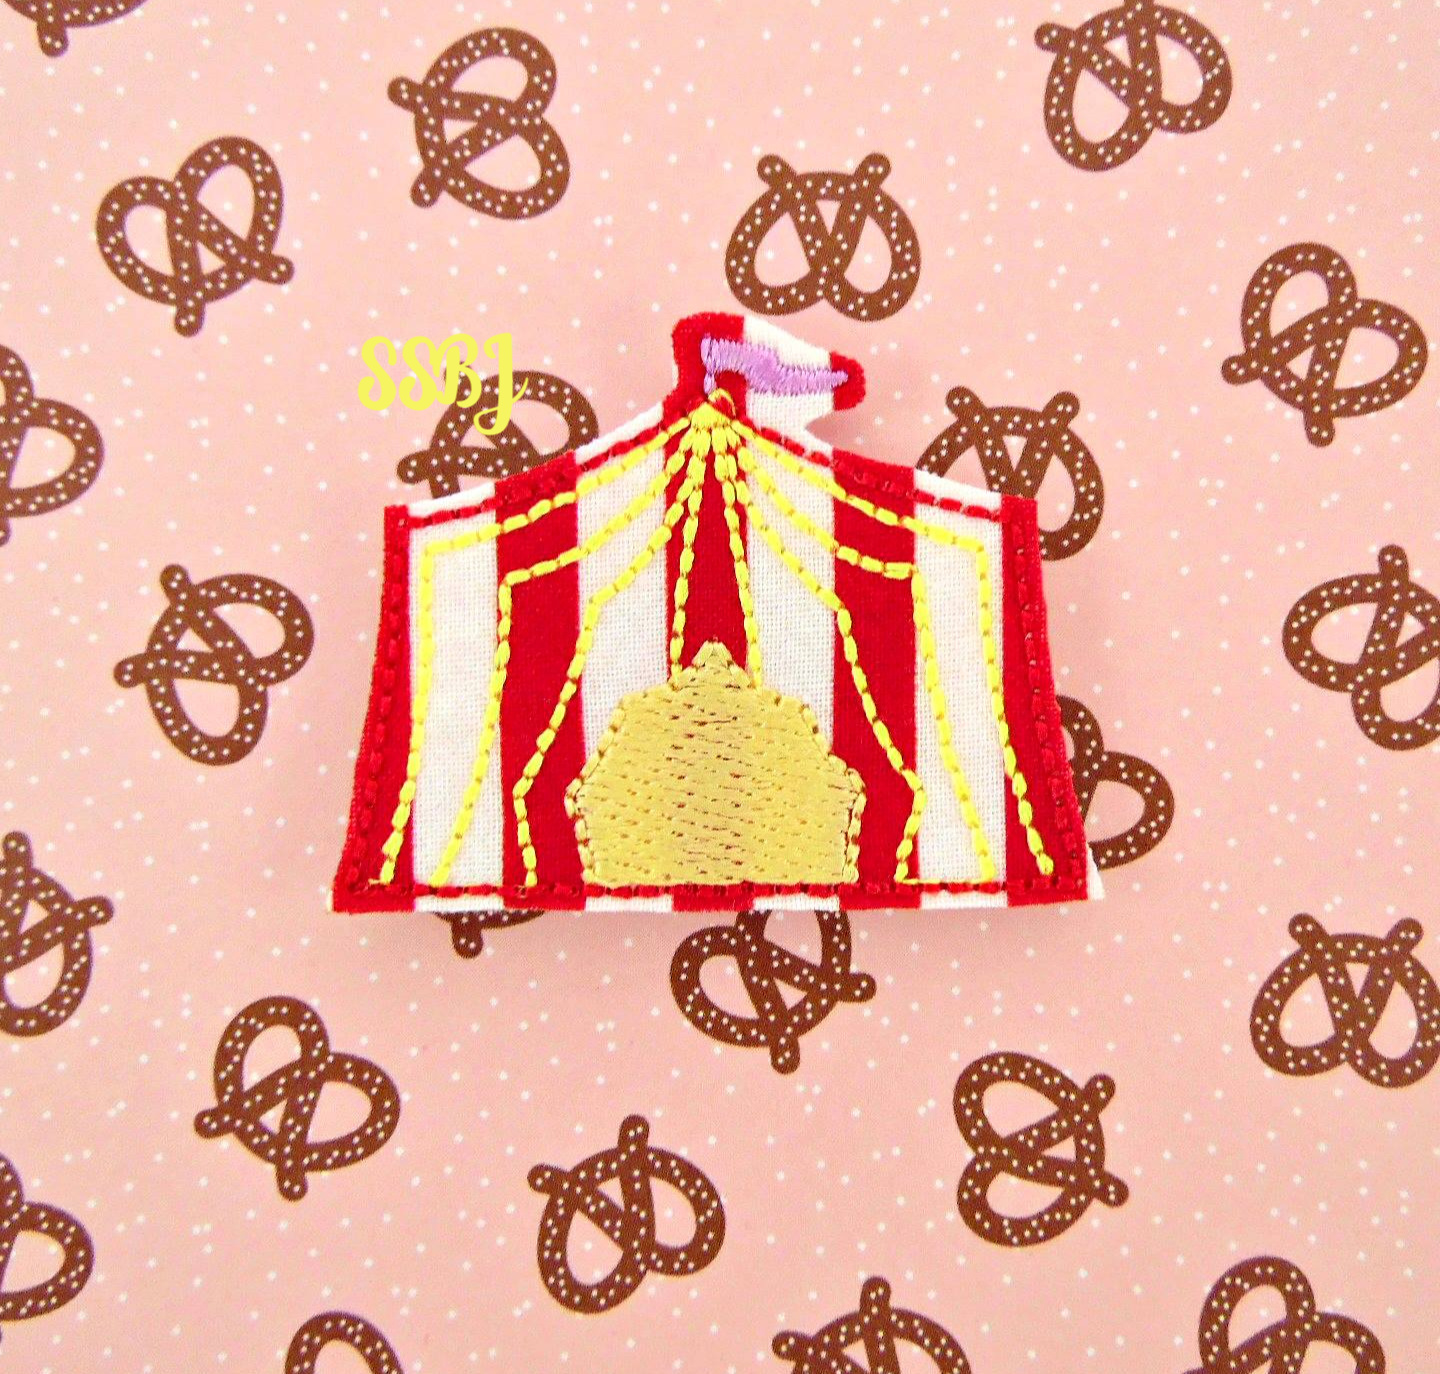 SSBJ Circus Tent Embroidery File